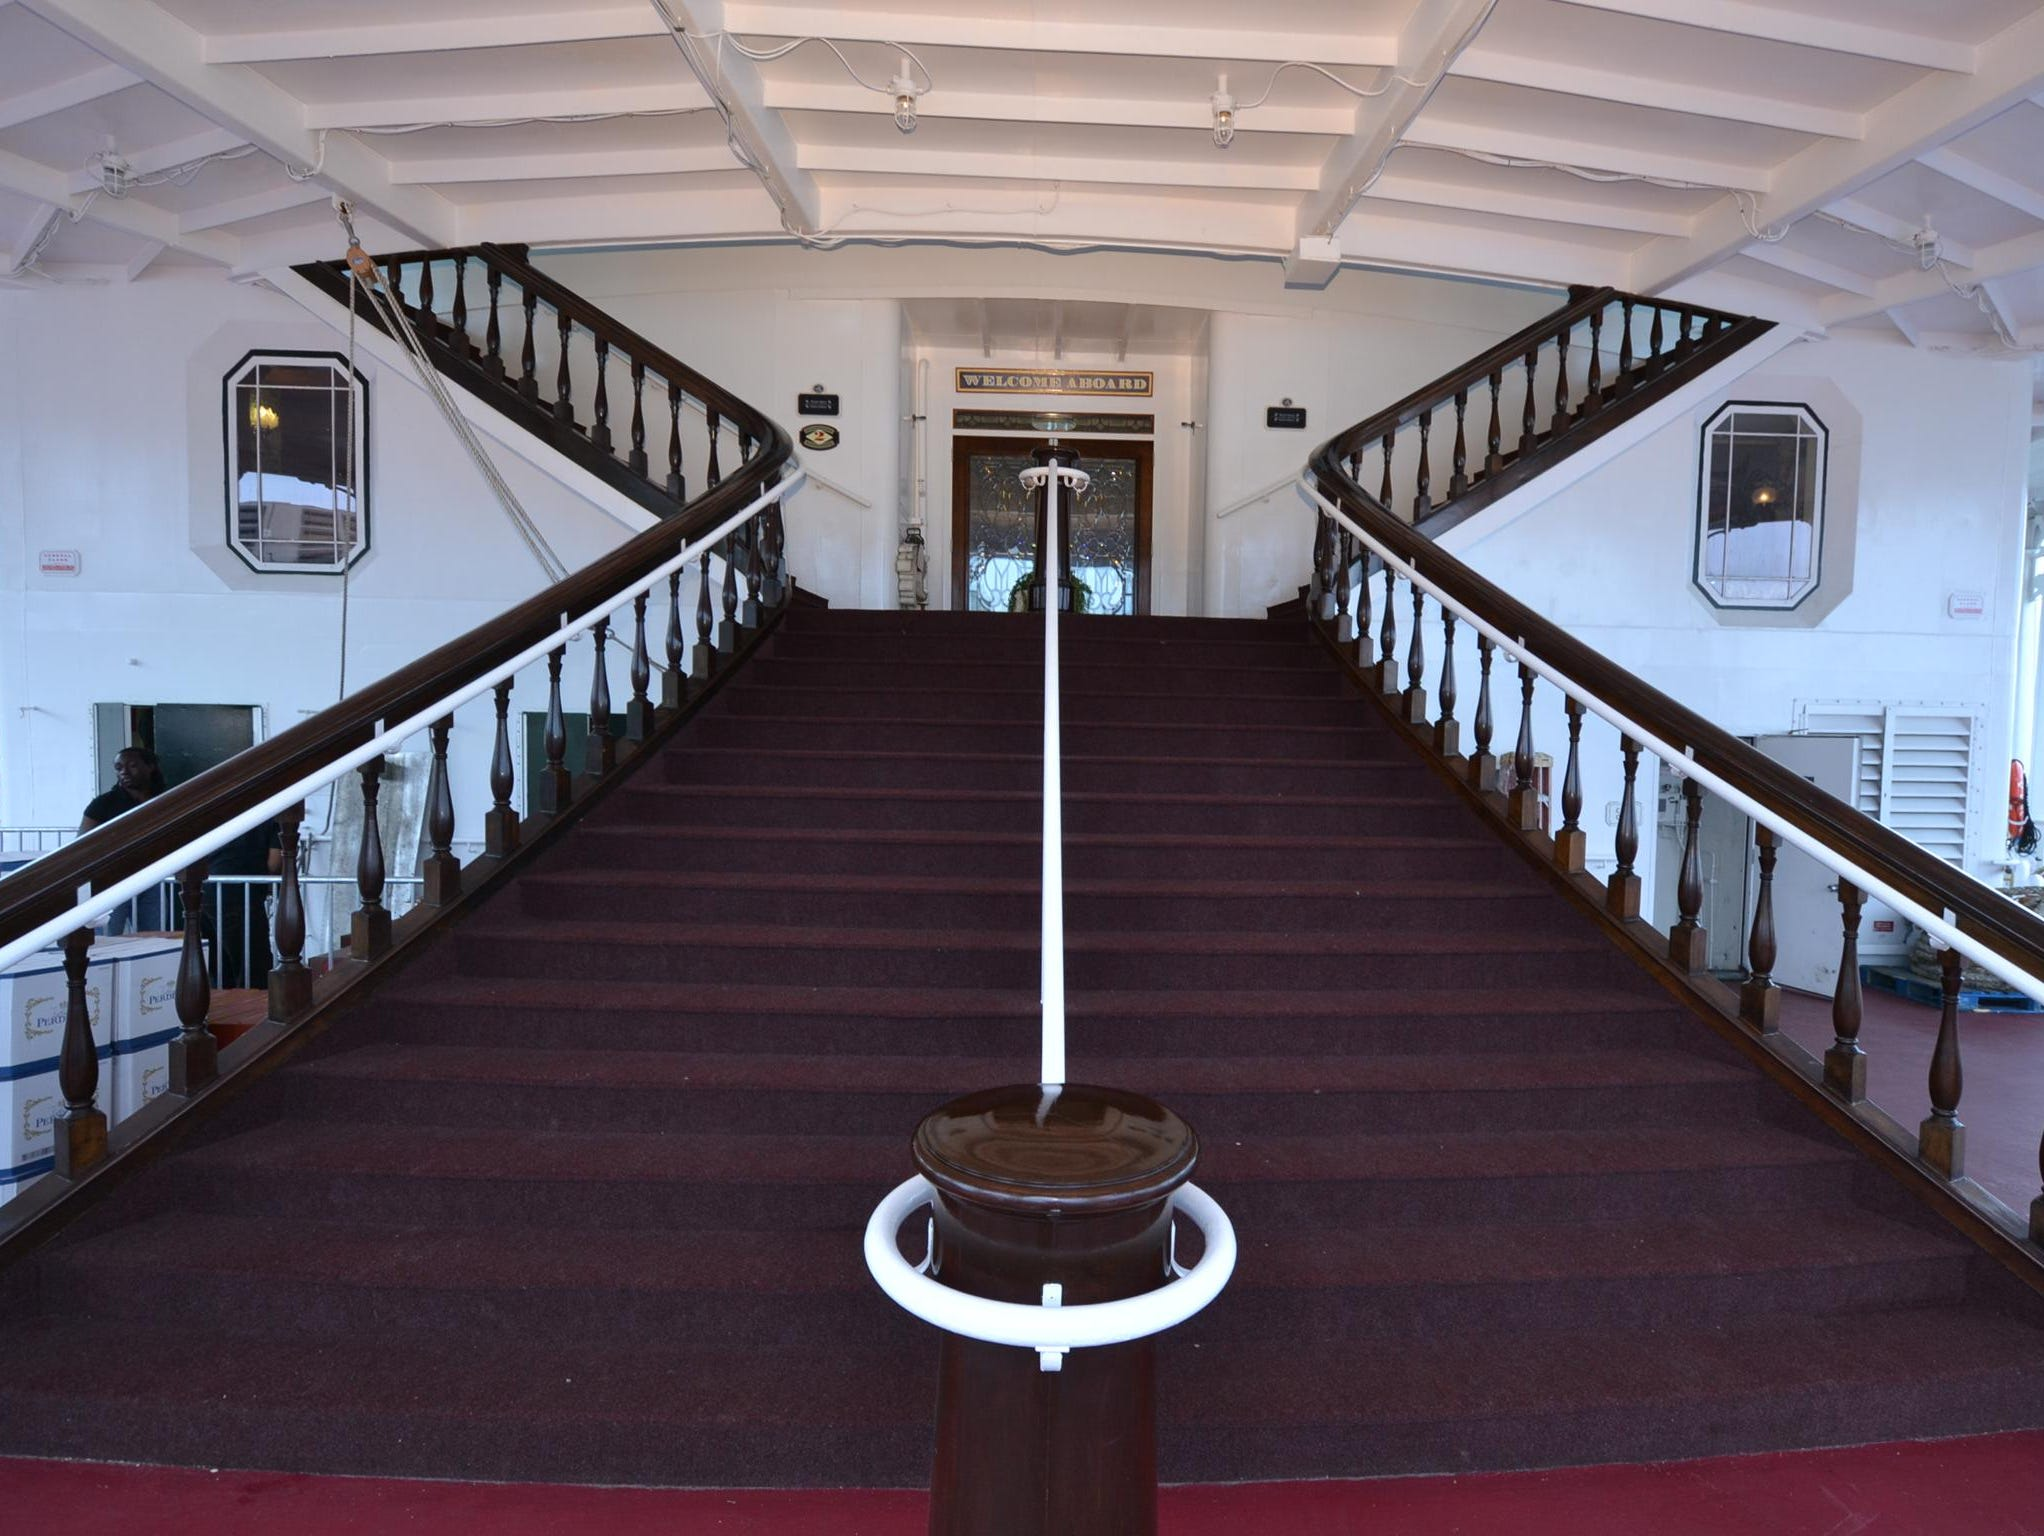 A grand stairway leads up to the main entrance at the front of the American Queen.